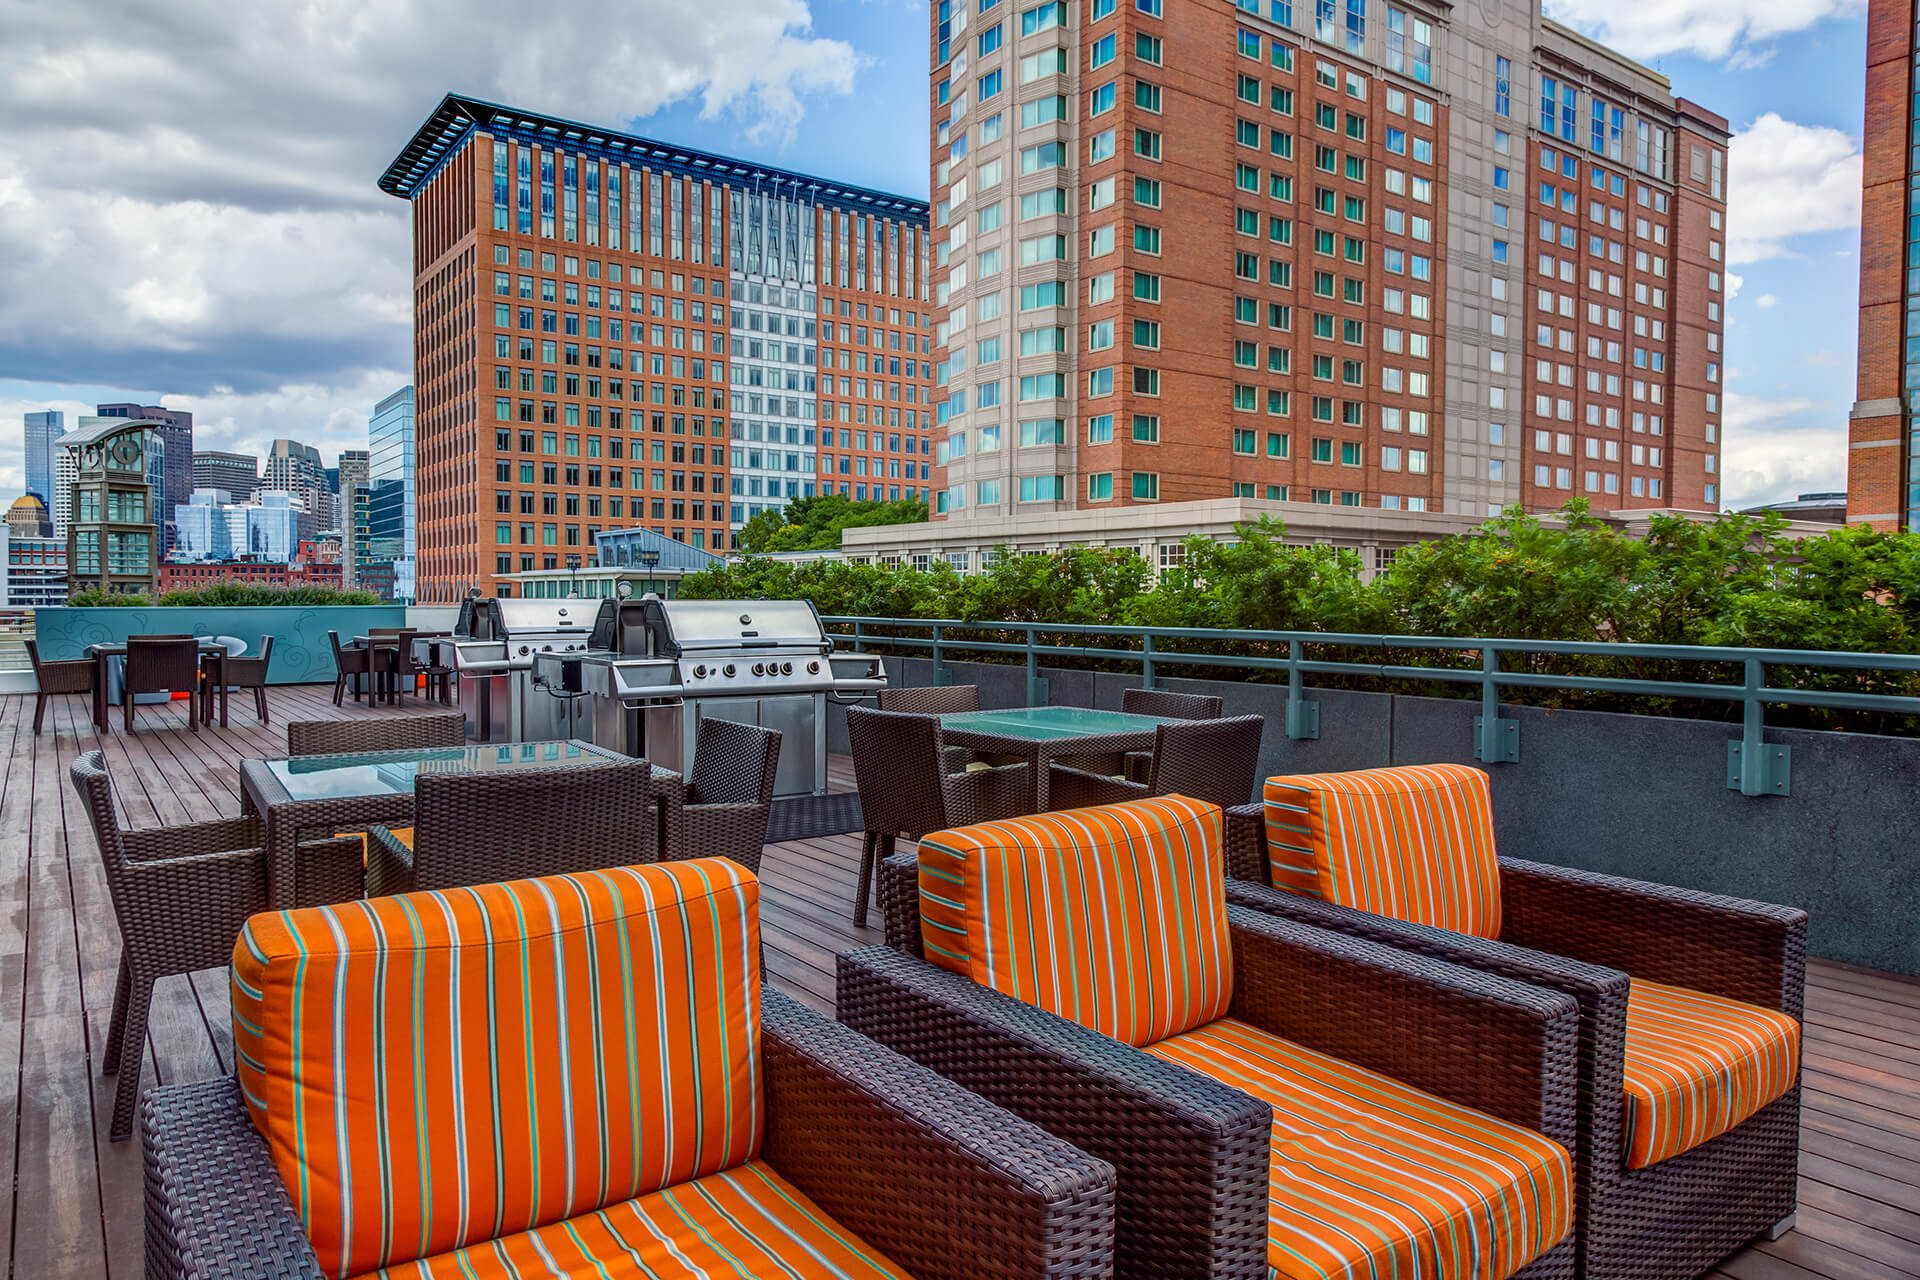 Grilling and Dining Area at Waterside Place by Windsor, 505 Congress S, MA